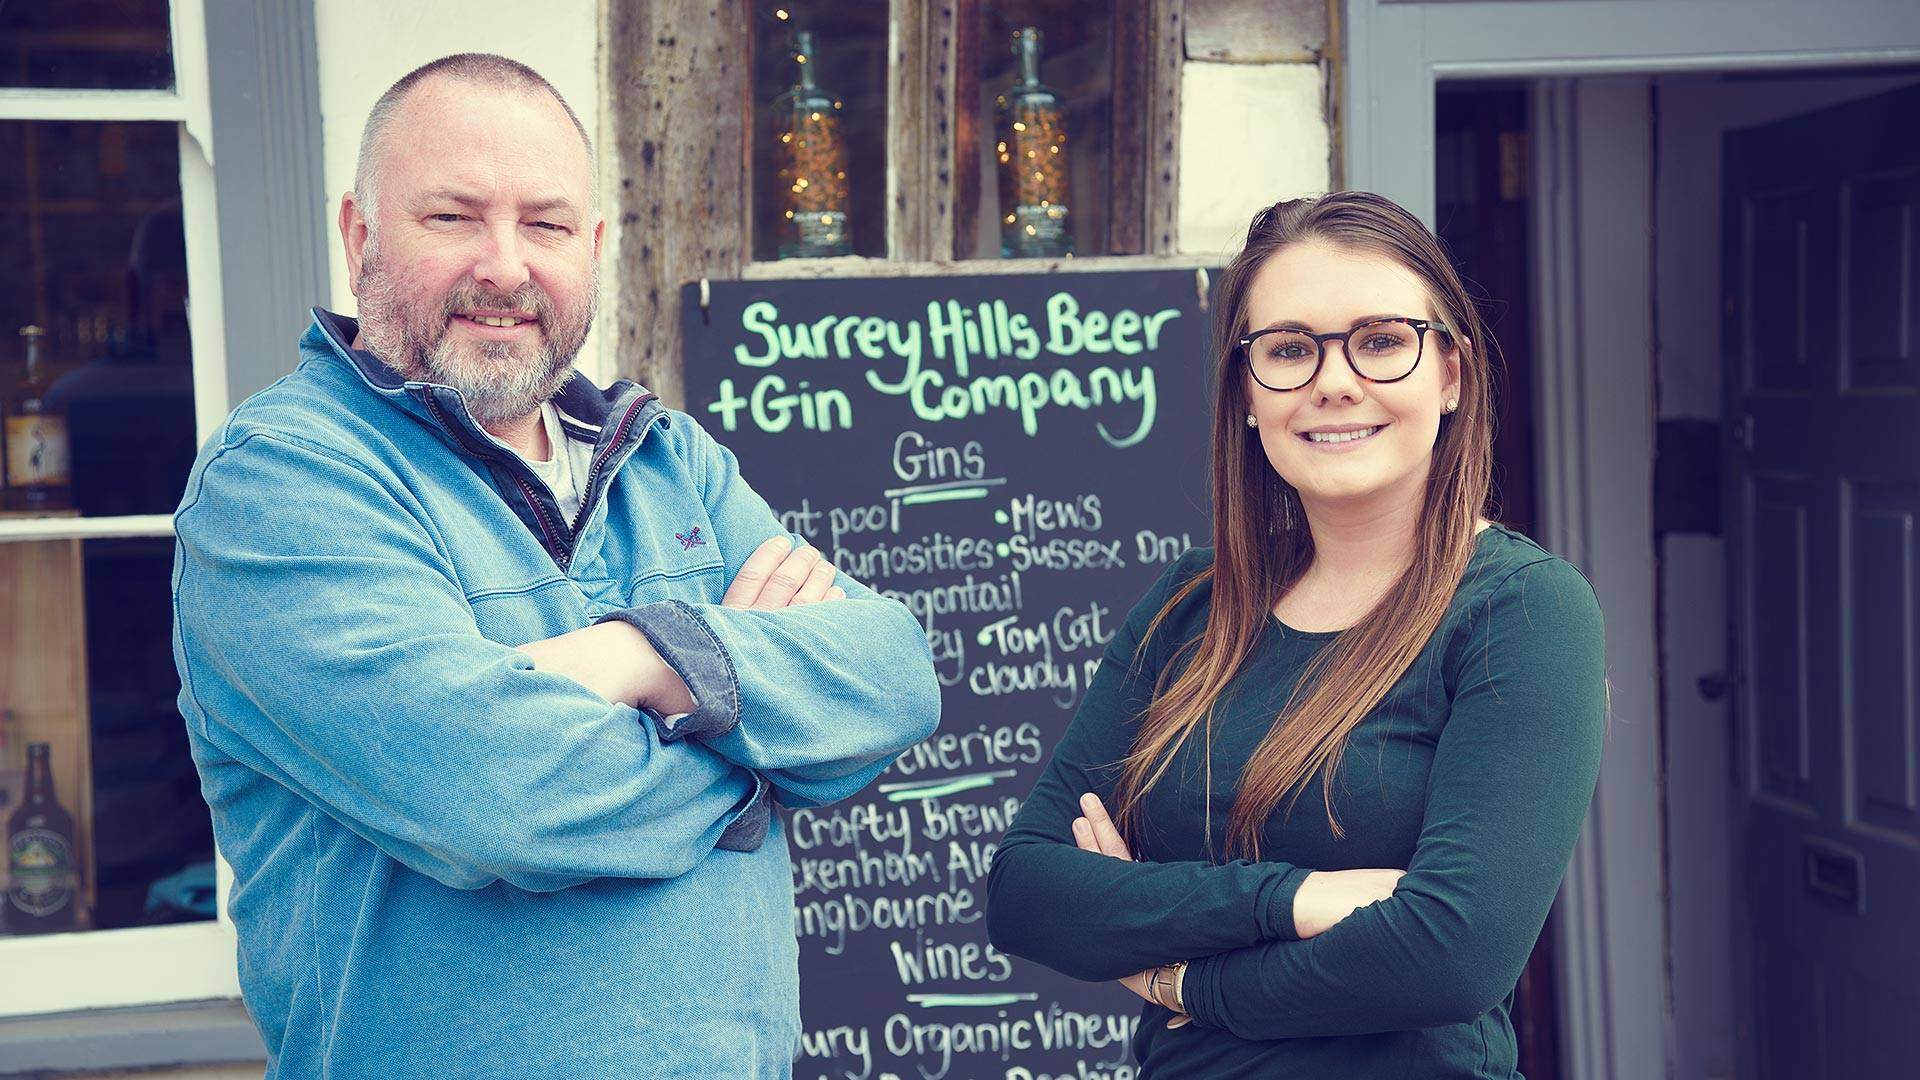 Image for Surrey Hills Beer and Gin Company